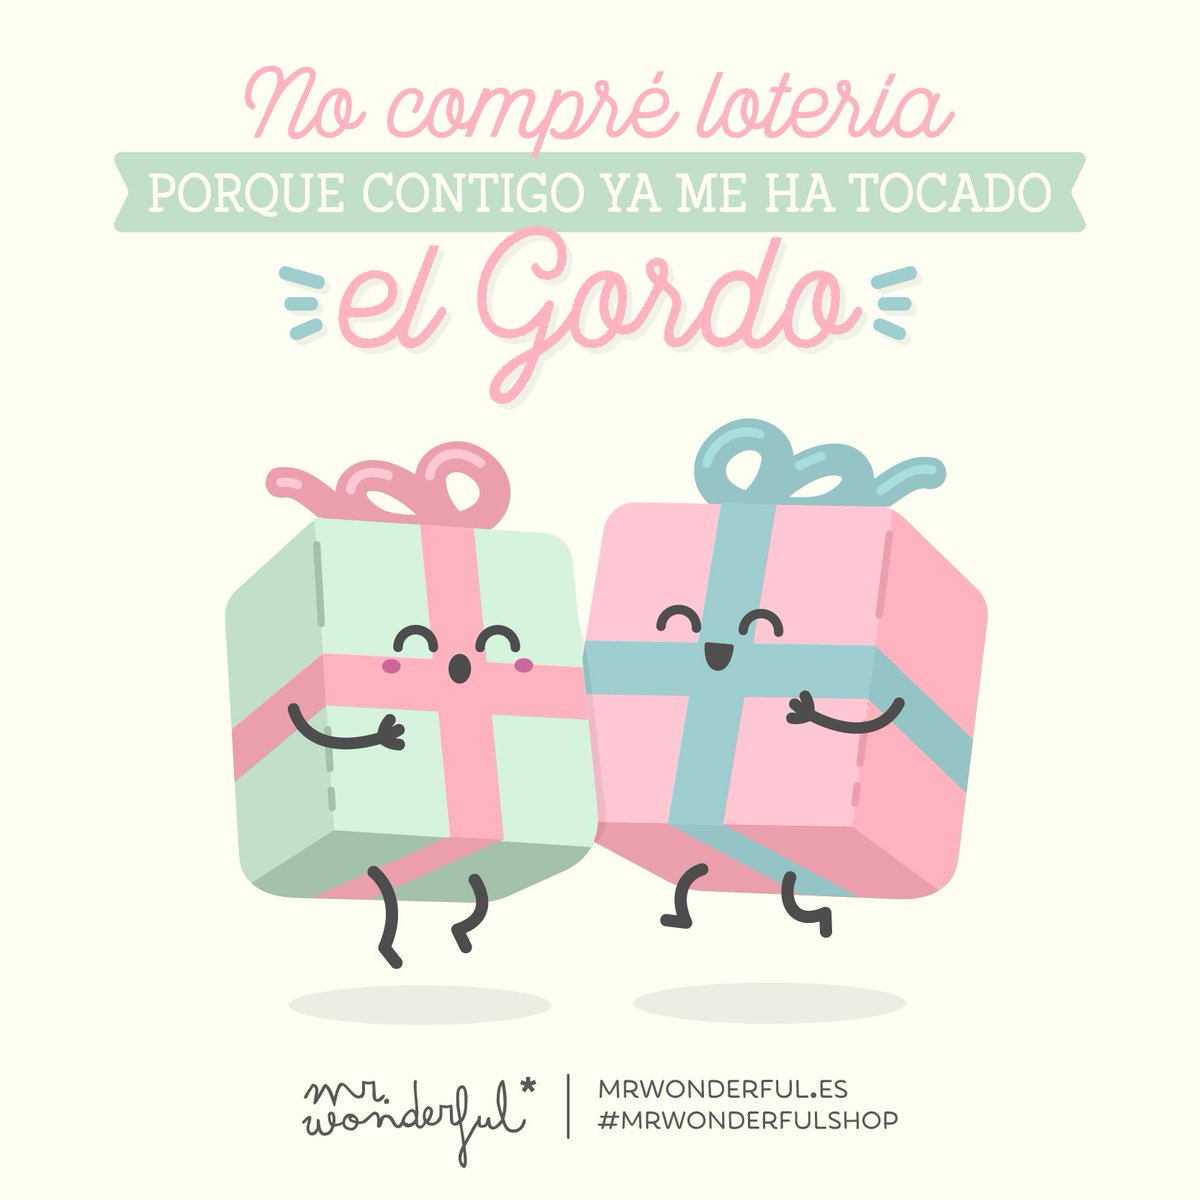 Mr wonderful mrwonderful twitter for Frases de mister wonderful